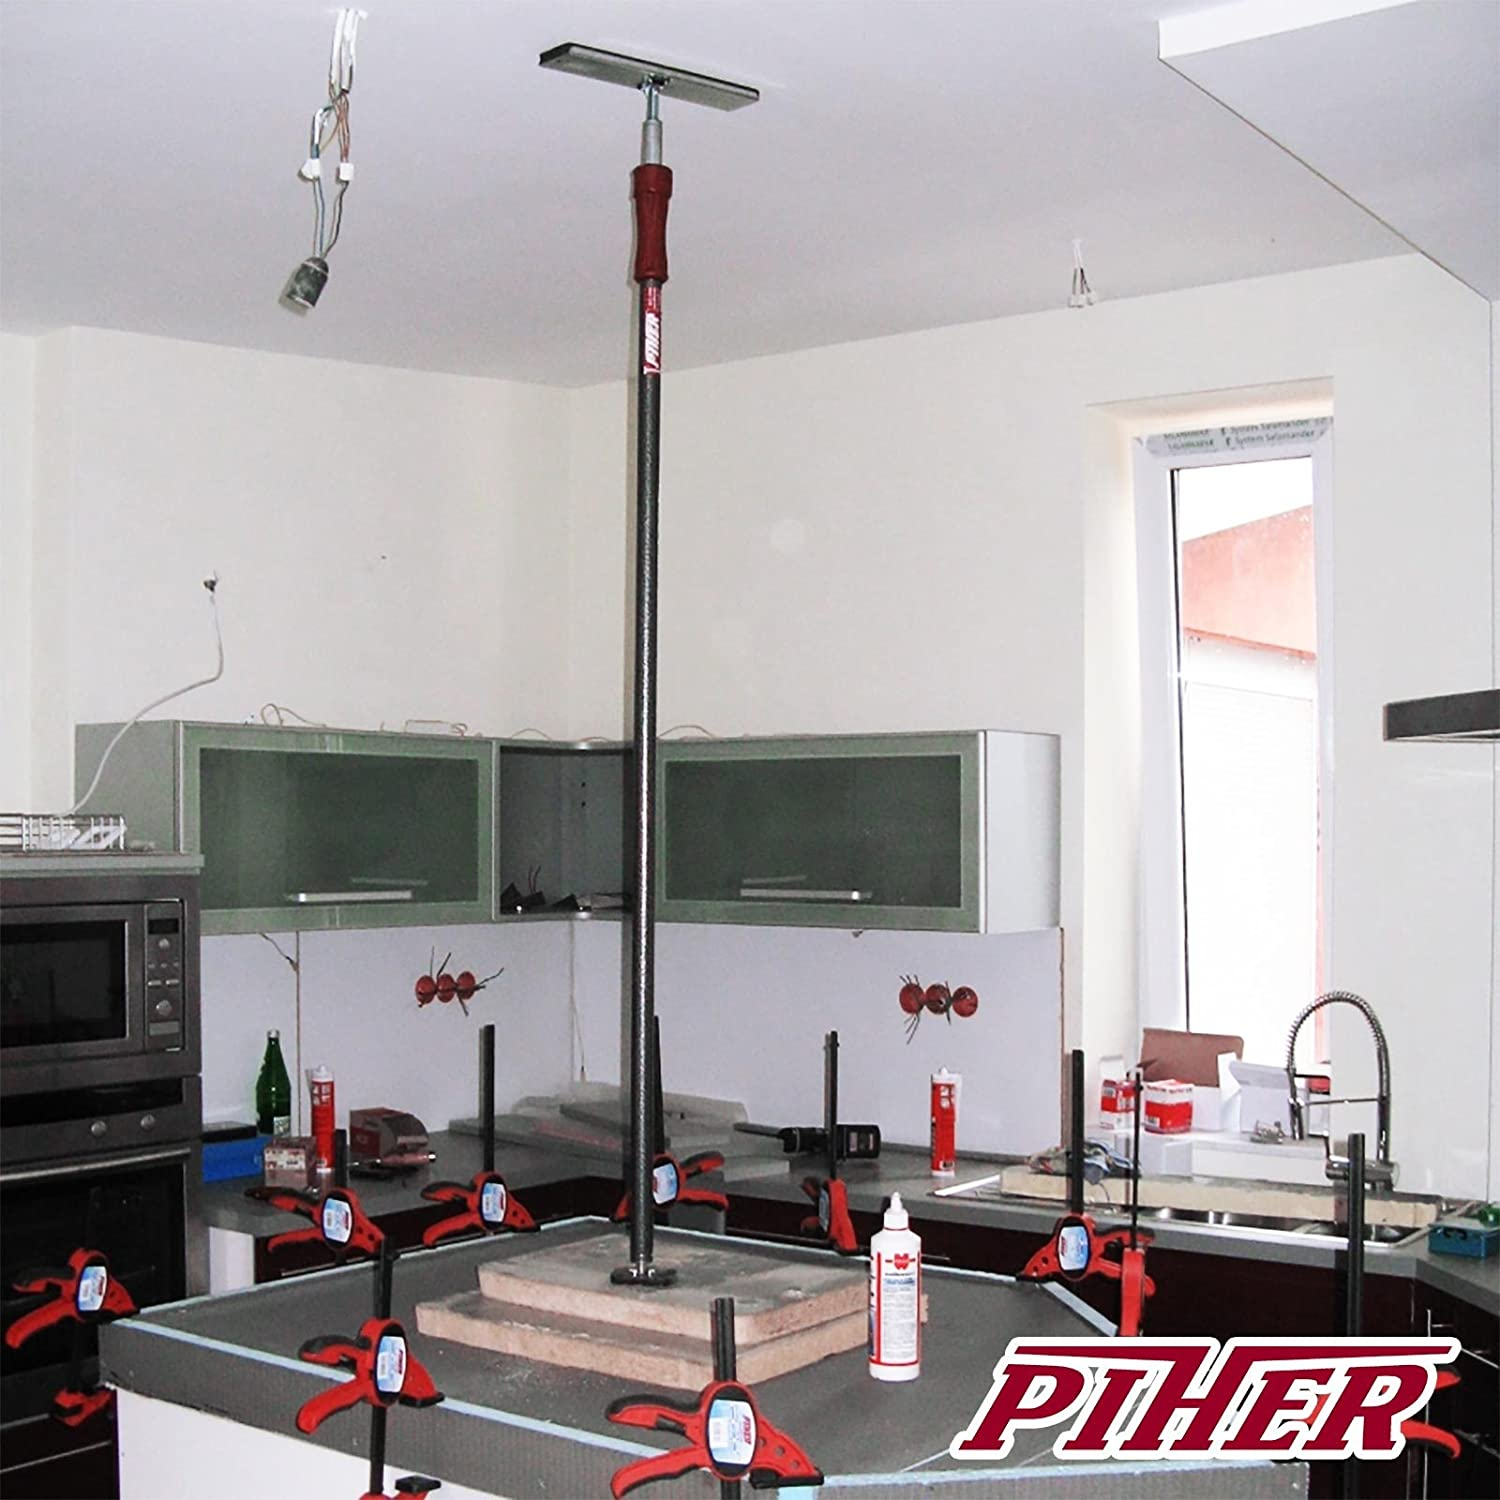 PIHER/ /Skating Stretchy Wide Press 6/x 8-inch for Stanchions 34036/ /Piher